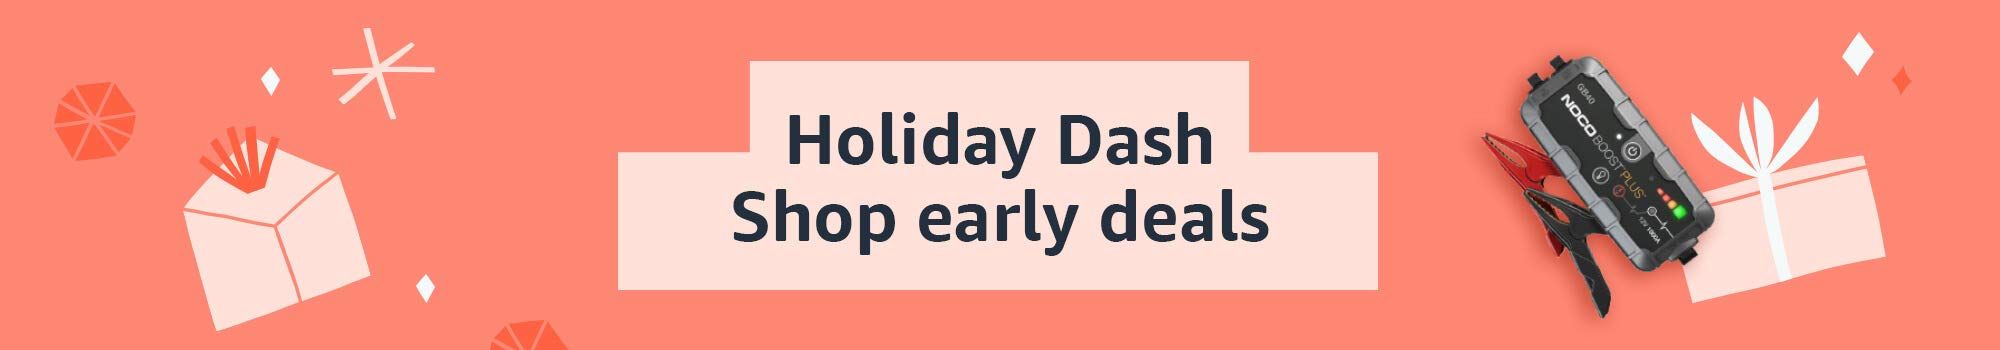 Holiday Dash: Shop Automotive parts and accessories